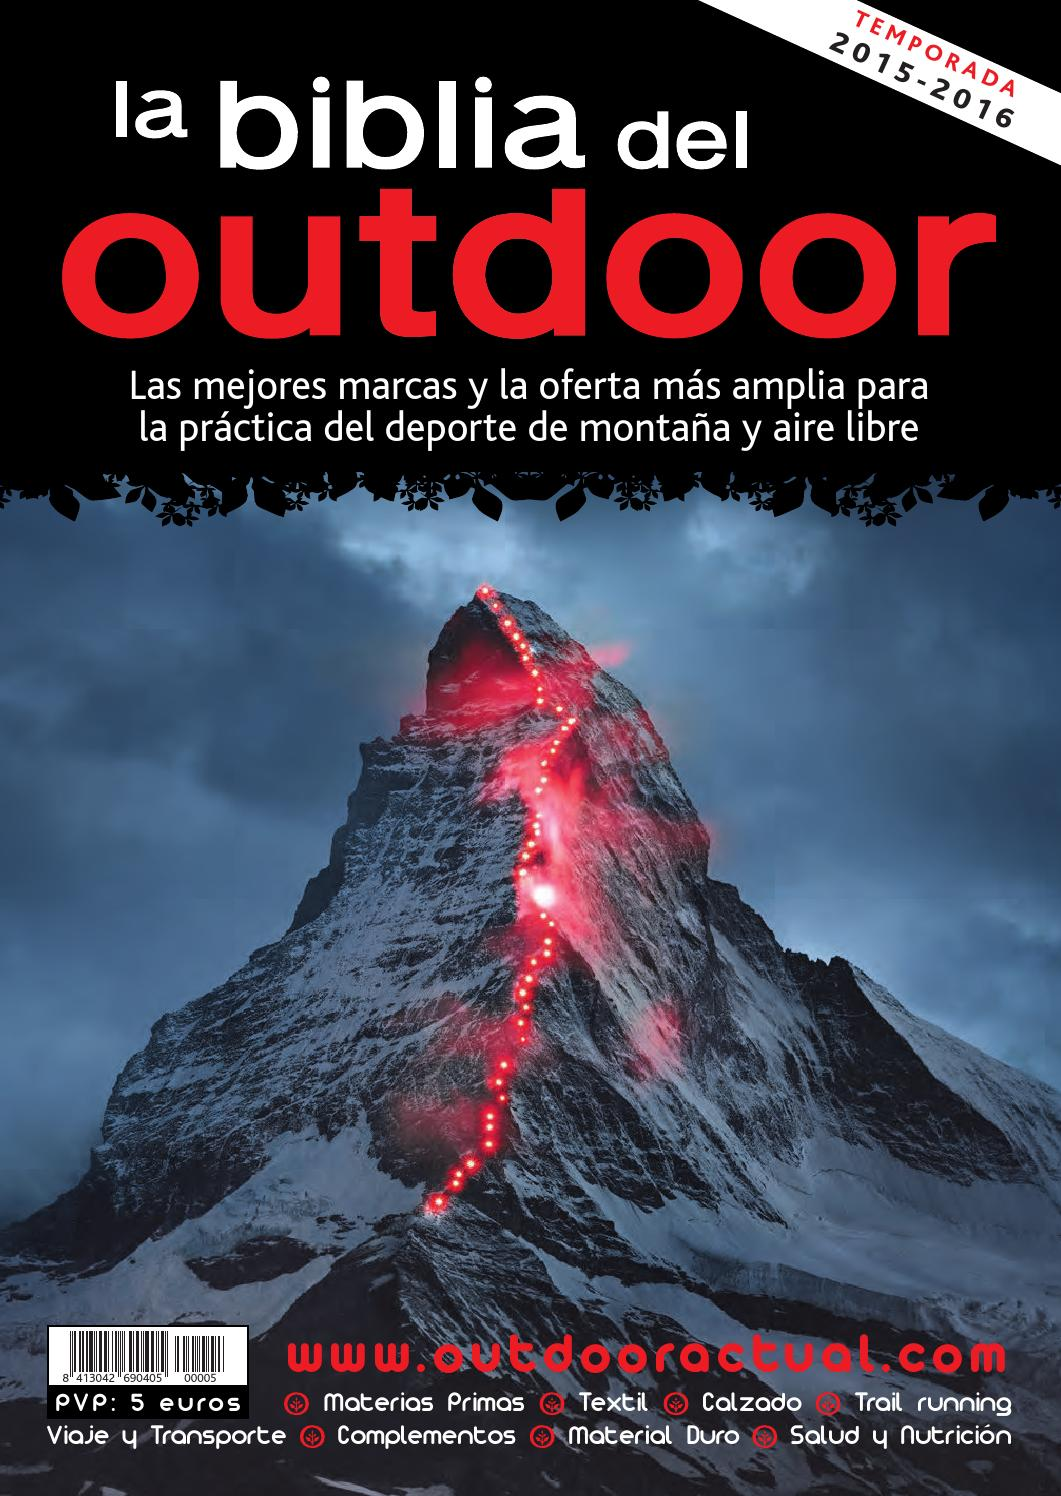 new styles 17c69 1fd0b La Biblia del Outdoor 2015-16 by Outdoor Actual - issuu